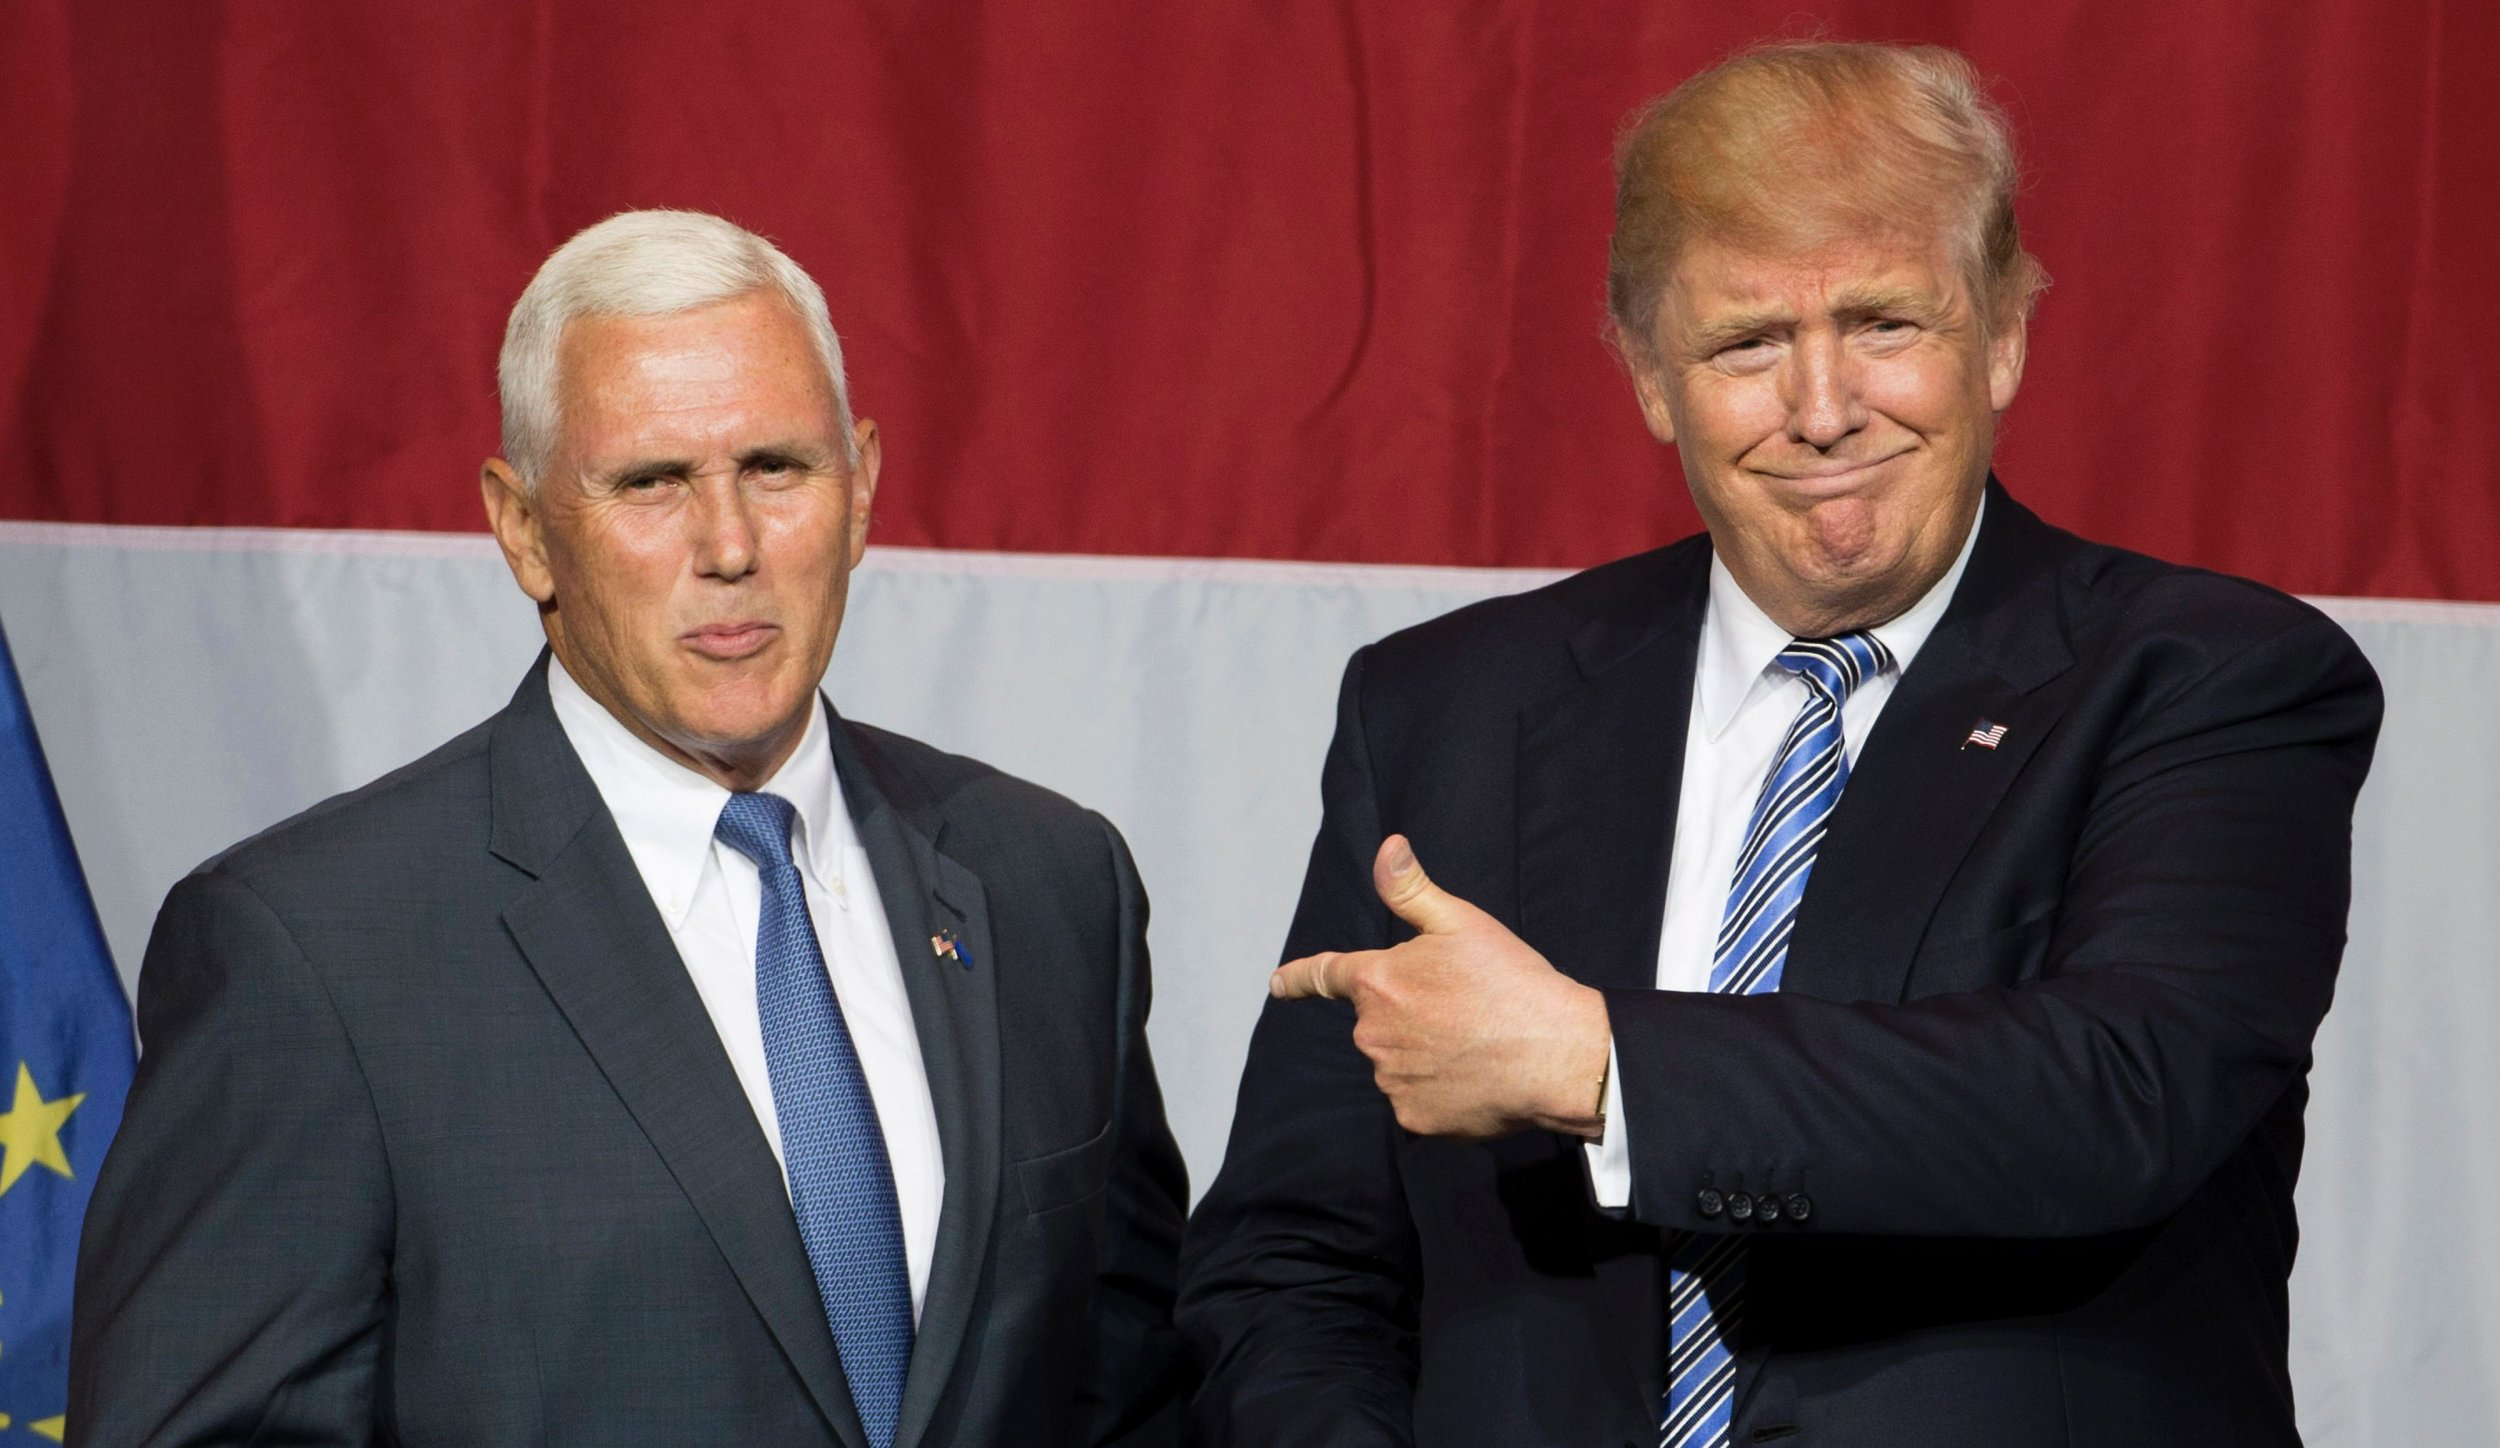 (FILES) This file photo taken on July 12, 2016 shows US Republican presidential candidate Donald Trump (R) and Indiana Governor Mike Pence (L) taking the stage during a campaign rally at Grant Park Event Center in Westfield, Indiana. Trump named Pence as his vice presidential running mate, on July 15, 2016. / AFP PHOTO / Tasos KATOPODISTASOS KATOPODIS/AFP/Getty Images